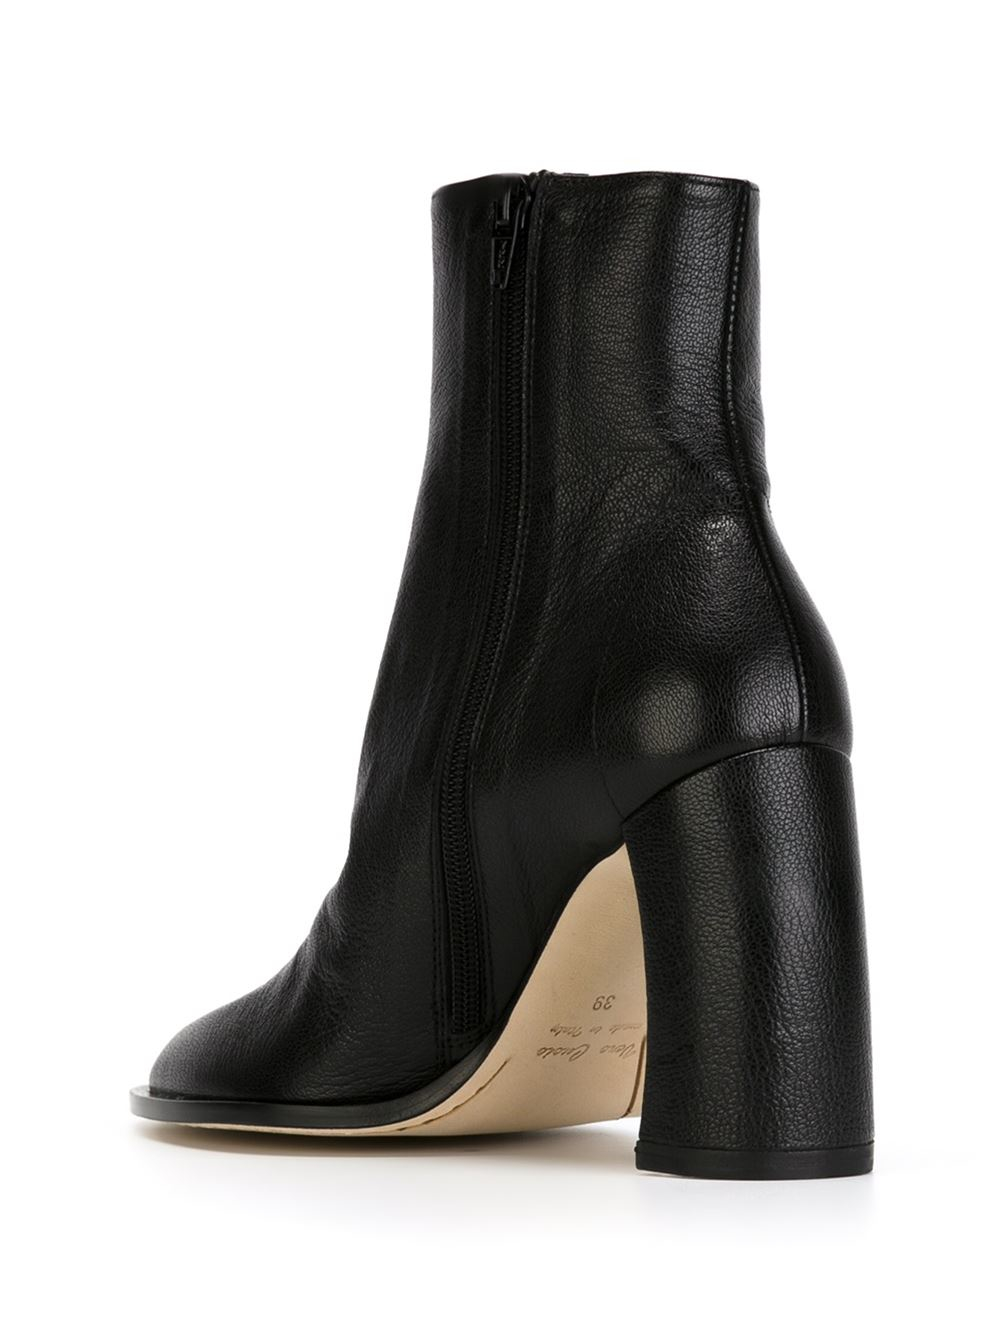 Ann Demeulemeester Curved-Heel Leather Ankle Boots in Black